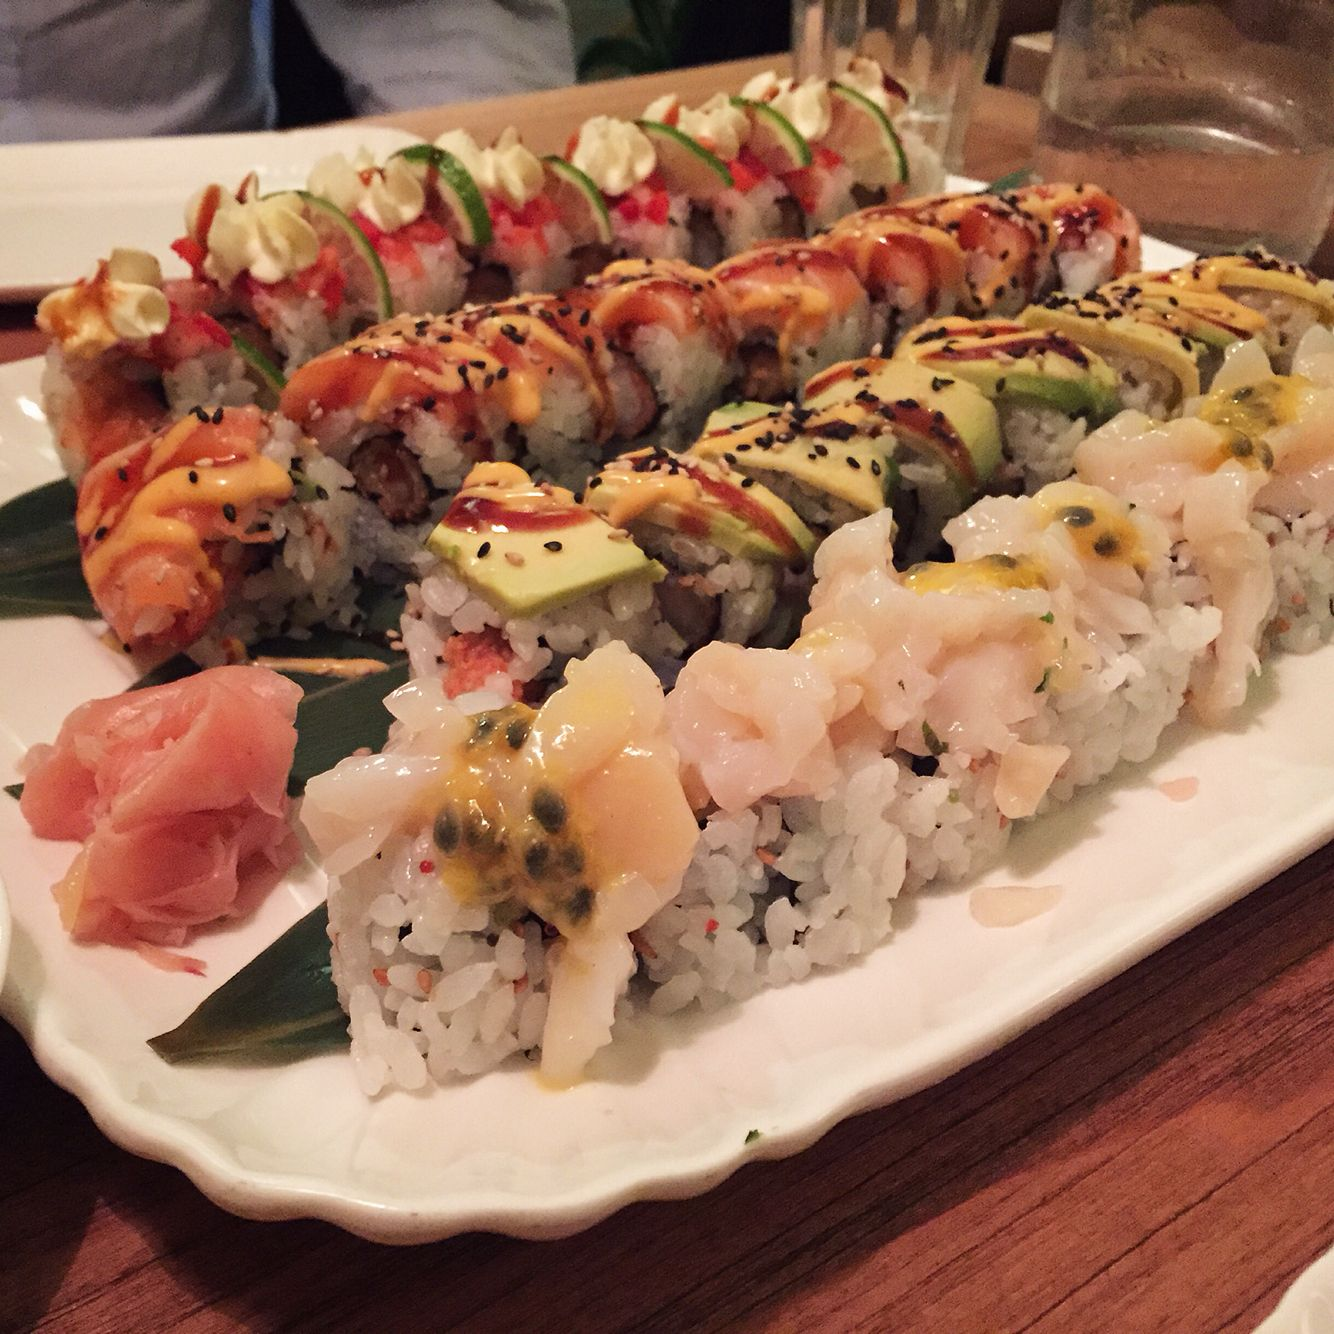 Dinner At Temakinho Restaurant In Rome: A Mix Of Japan And